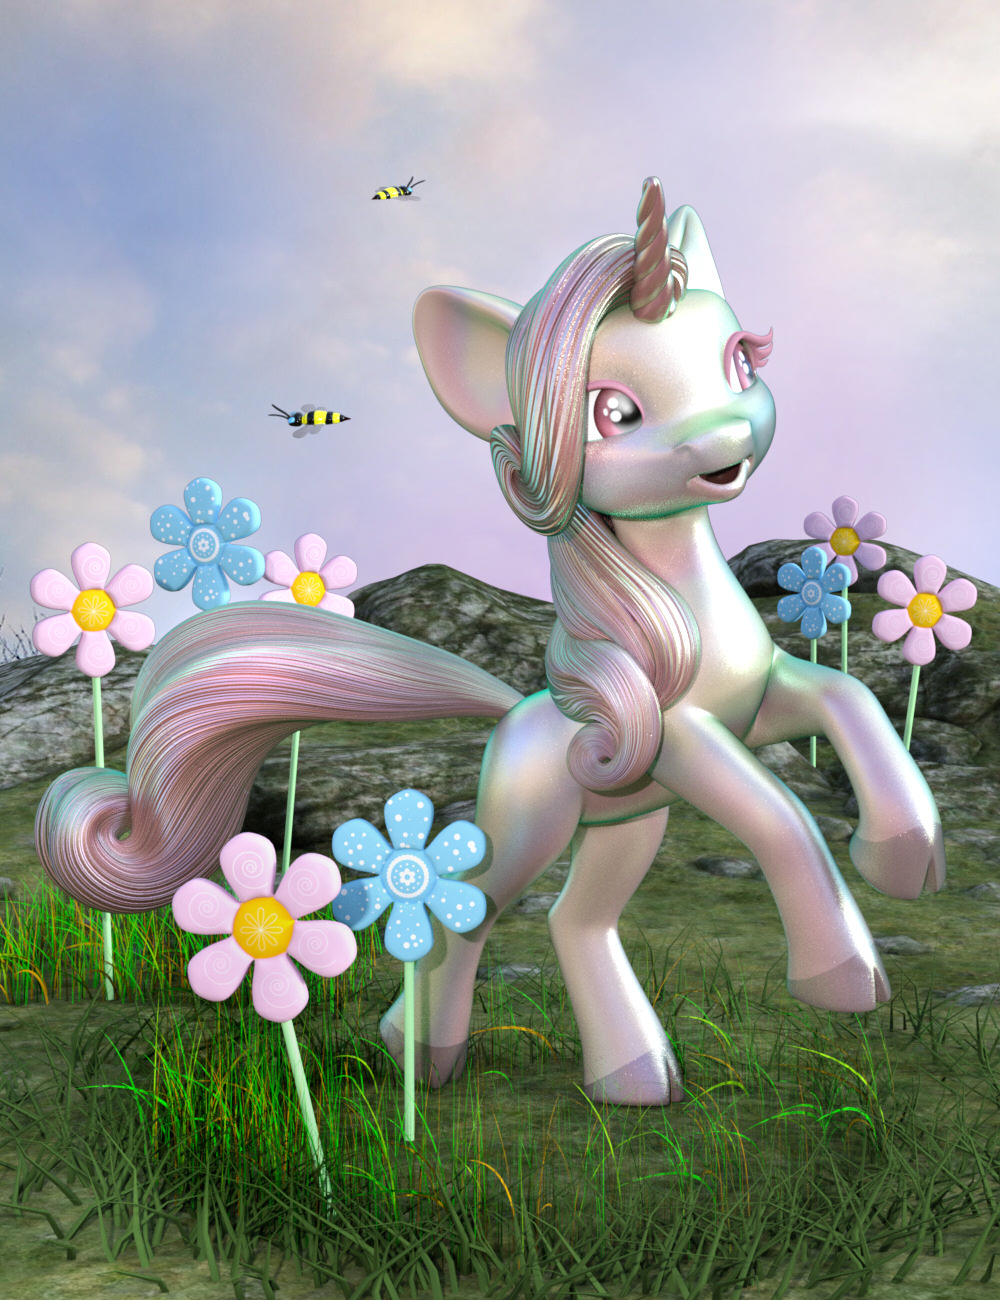 Fanciful Textures for Precious Unicorn by: NGartplay, 3D Models by Daz 3D